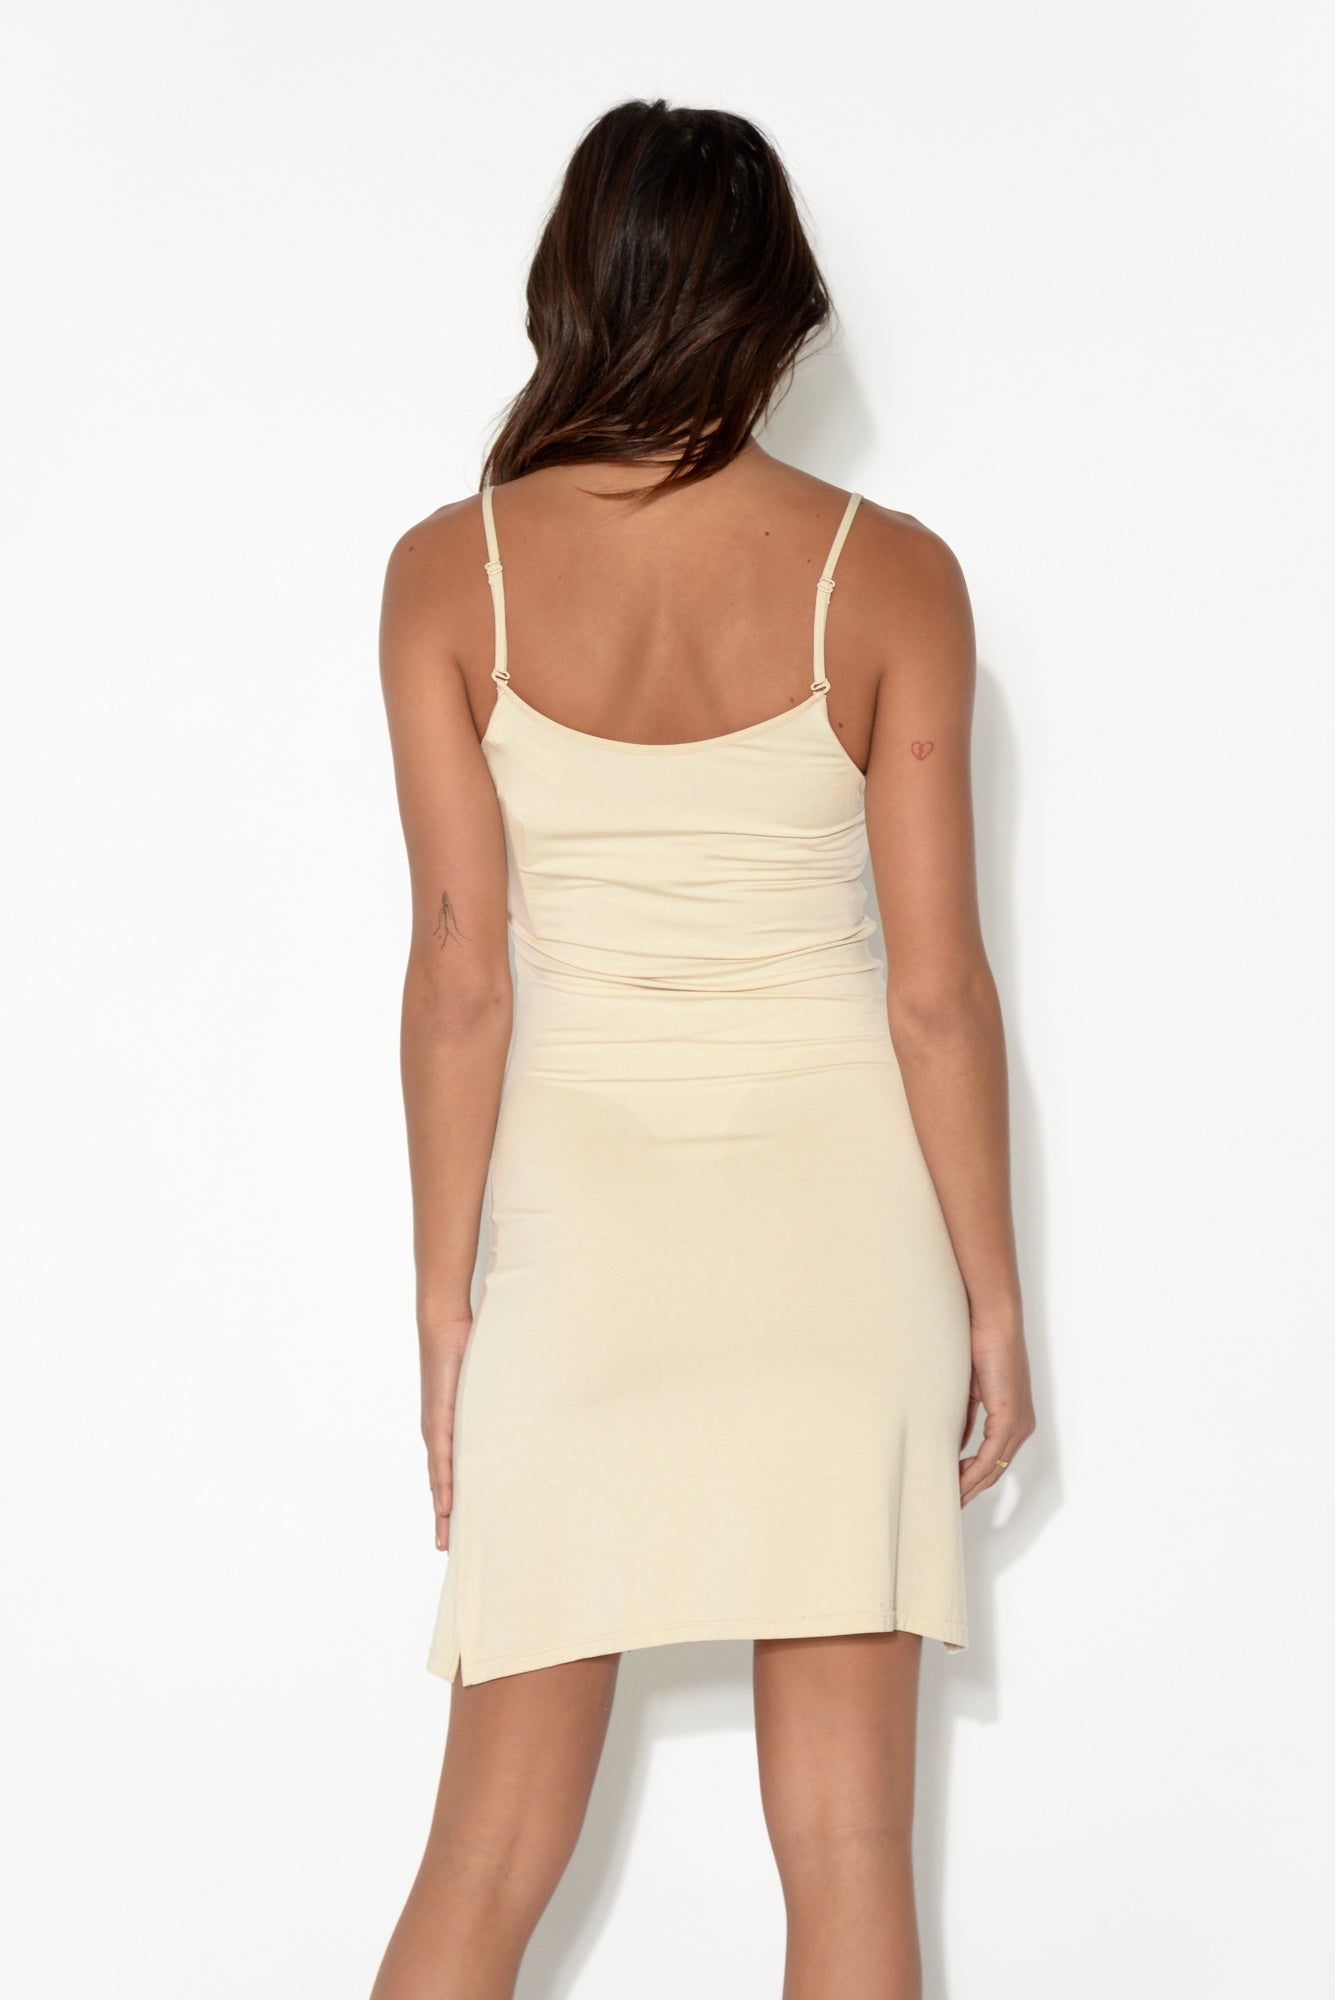 Nude Modal Slip Dress